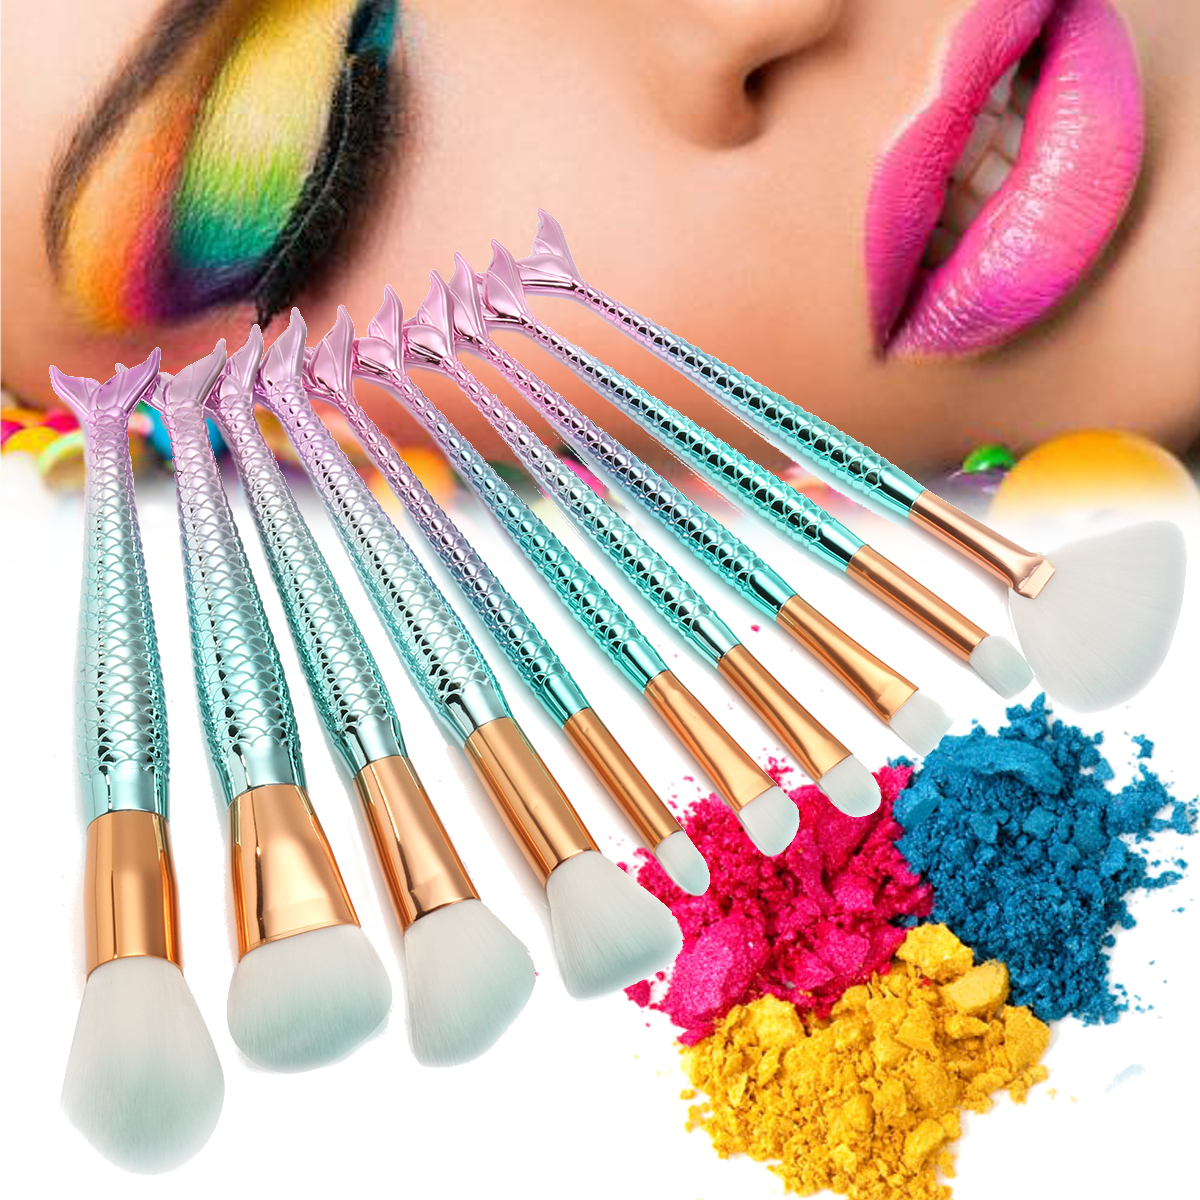 LUCKYFINE Mermaid Makeup Brushes Set 10Pcs